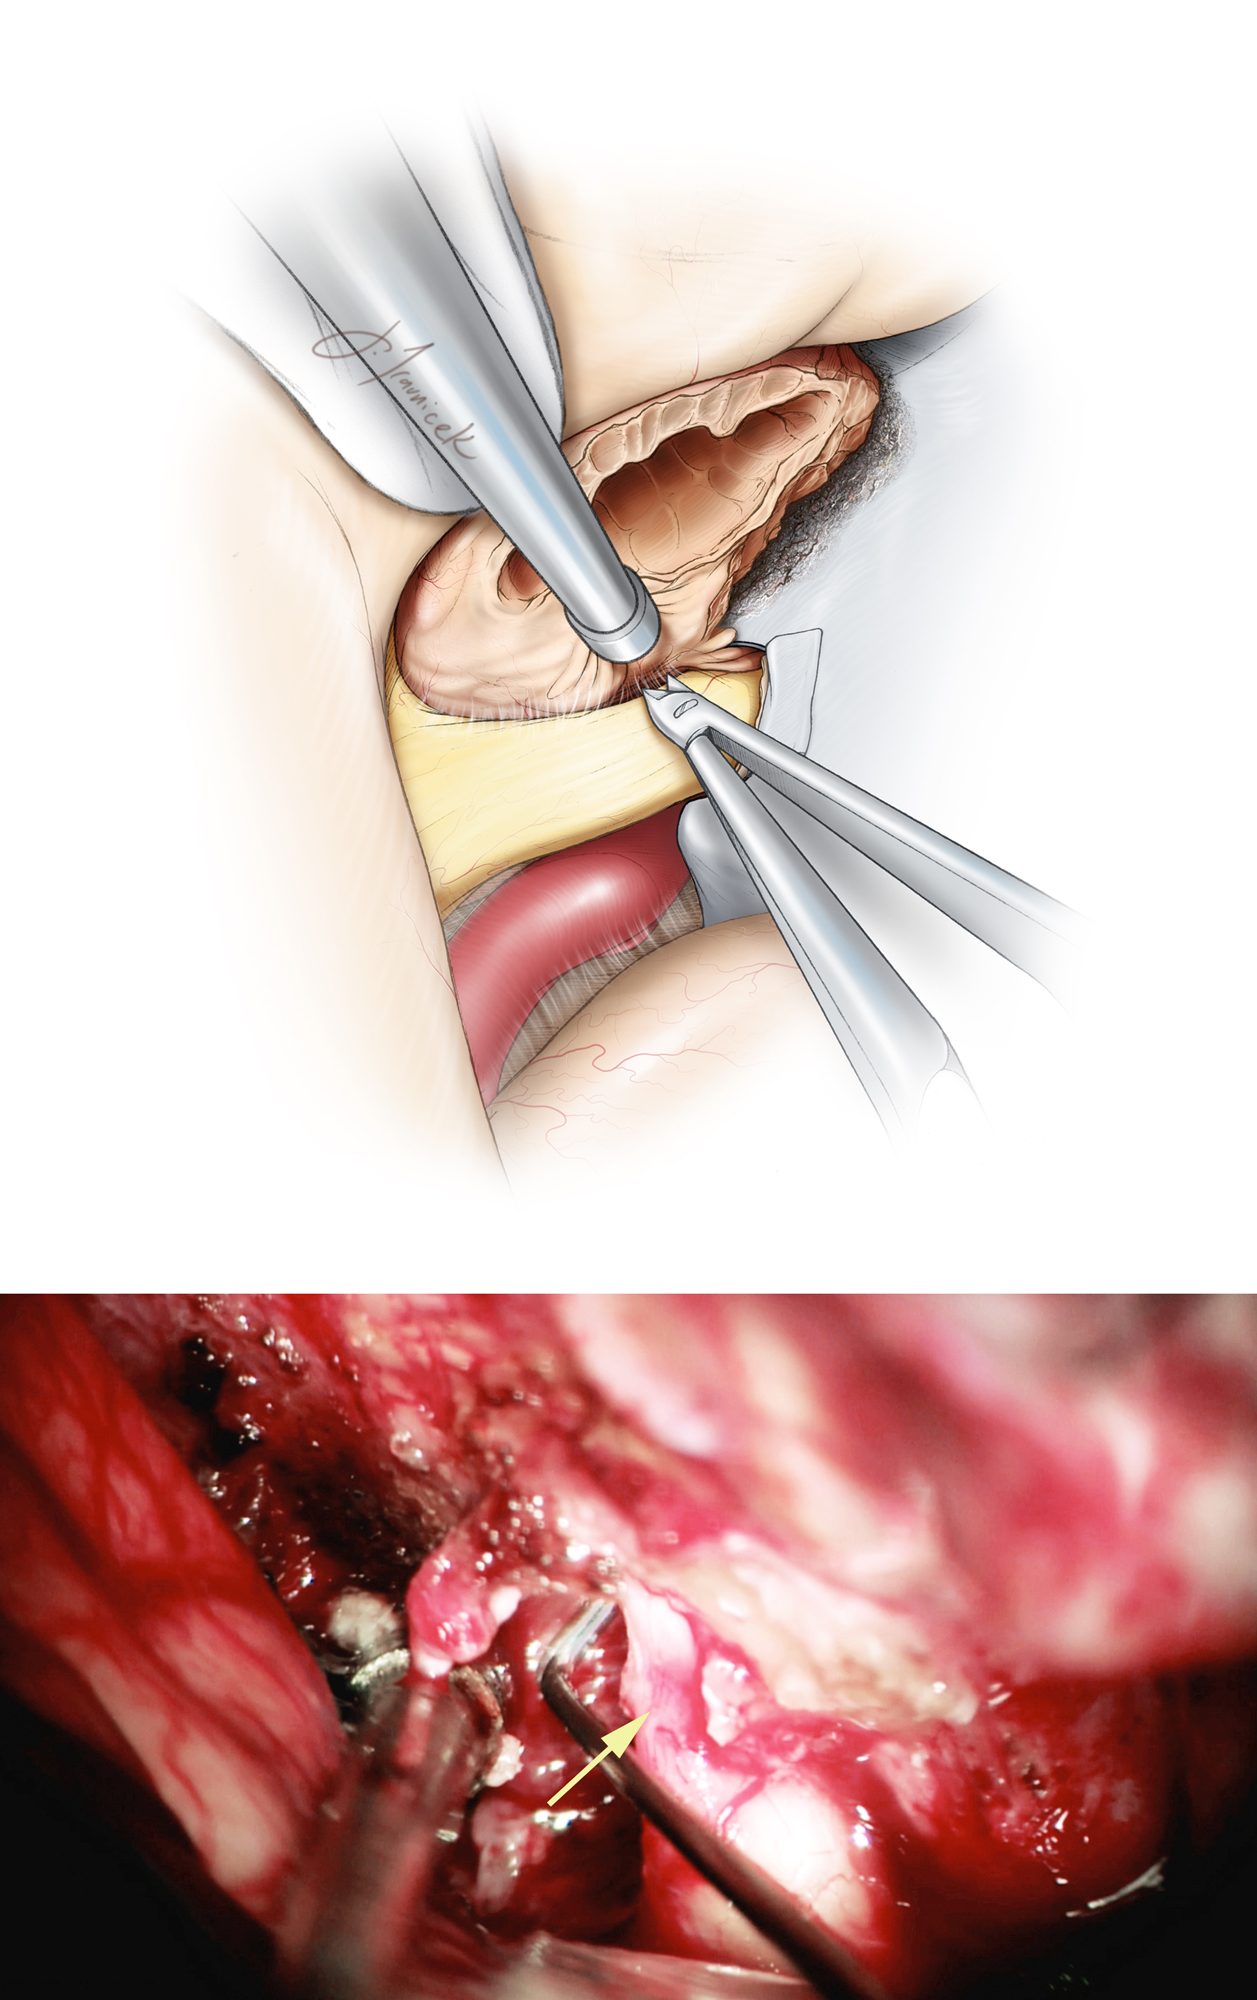 Figure 10: After aggressively debulking the tumor, I use sharp microsurgical techniques to dissect the arachnoid planes between the tumor capsule and ipsilateral optic nerve and chiasm. The tumor can flatten and attach to the nerve, complicating creation of a safe dissection plane between the nerve and the tumor. In this circumstance, the surgeon should patiently dissect and gently mobilize the tumor away from the nerve. If dissection planes cannot be safely developed, a thin sheet of tumor is left on the nerve and the optic foramen is unroofed. The site of nerve compression after opening of the falciform ligament is demonstrated (lower photo, arrow).    The anterior cerebral and internal carotid arteries are usually not densely adherent to the tumor and are readily dissected away.  Care is taken to preserve the small branching vessels originating from the medial aspect of the internal carotid artery supplying the optic nerves and chiasm. These small perforating vessels also arise from the superior hypophyseal artery complex.